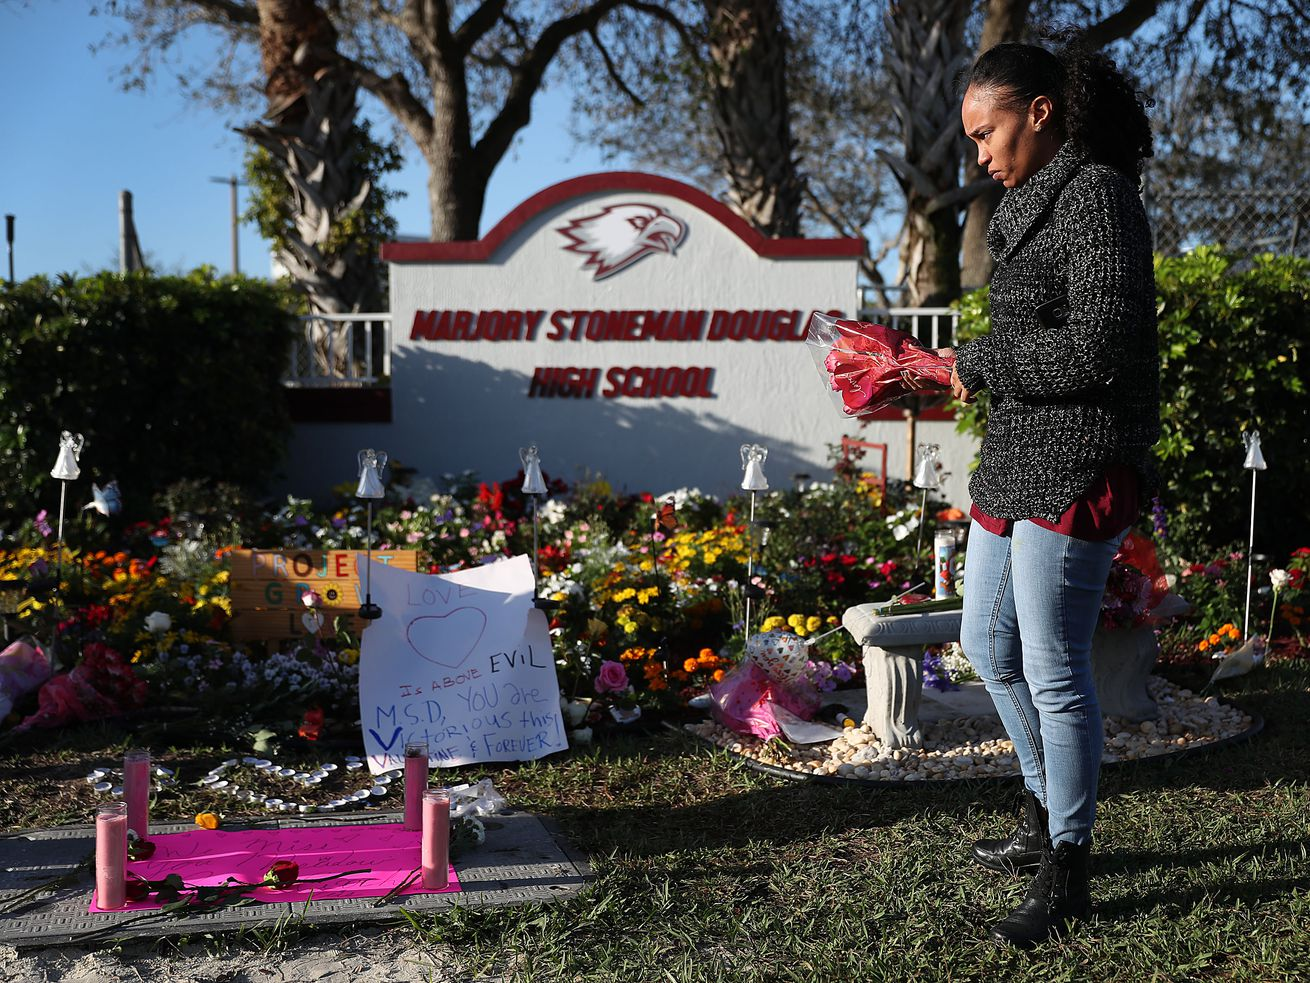 A memorial to students killed in the Parkland school shooting on February 14, 2018. More than a year later, Florida legislators have expanded a program allowing teachers to be armed in schools.